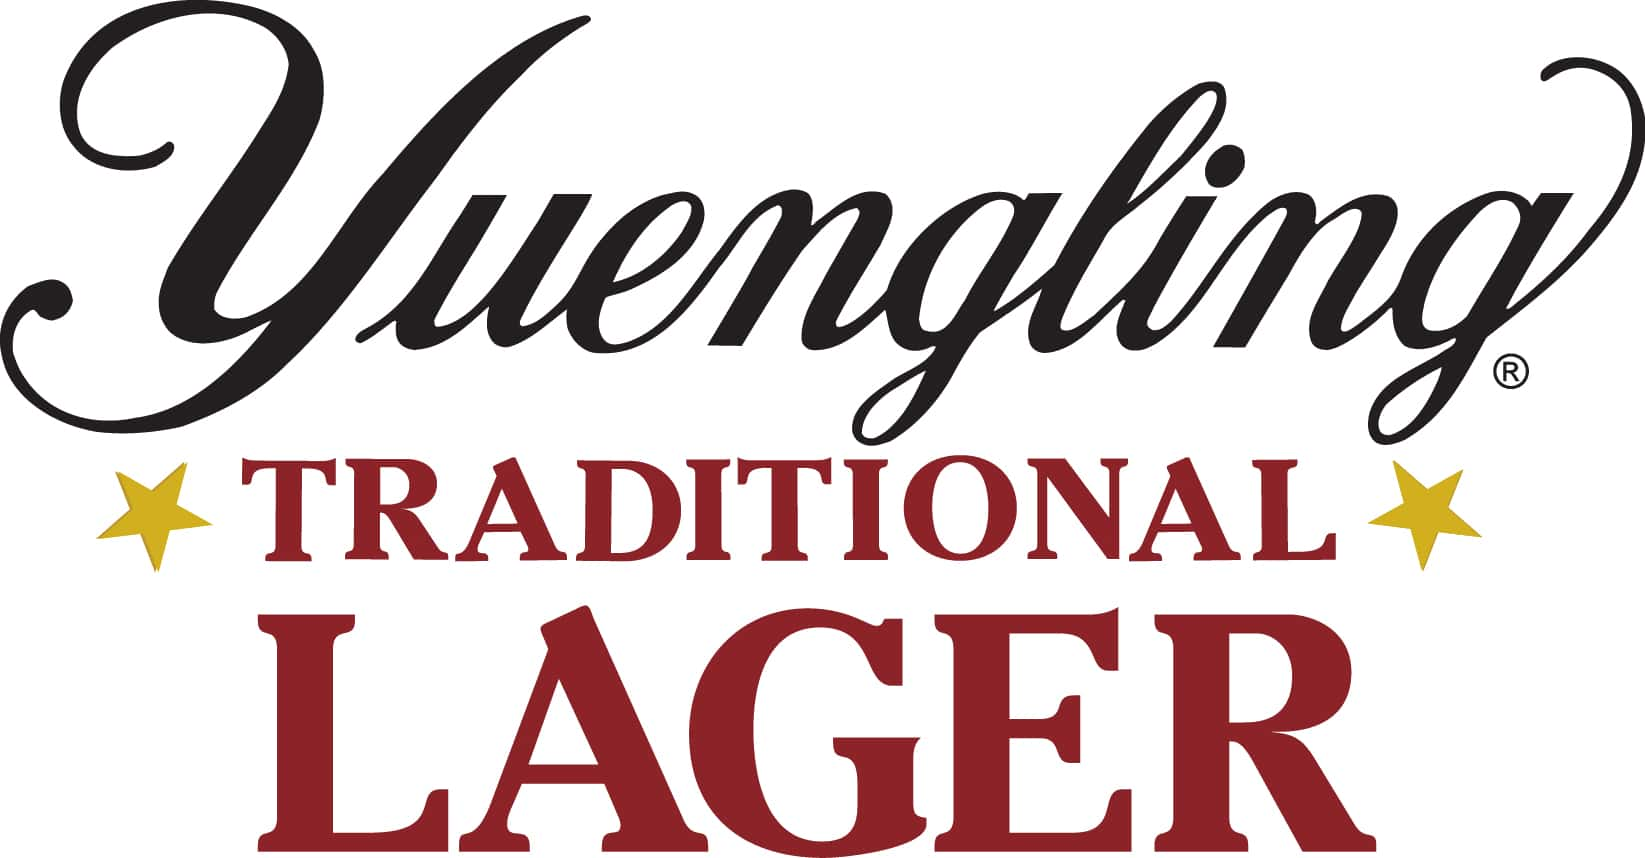 Y_Traditional_LagerLogo_Stacked